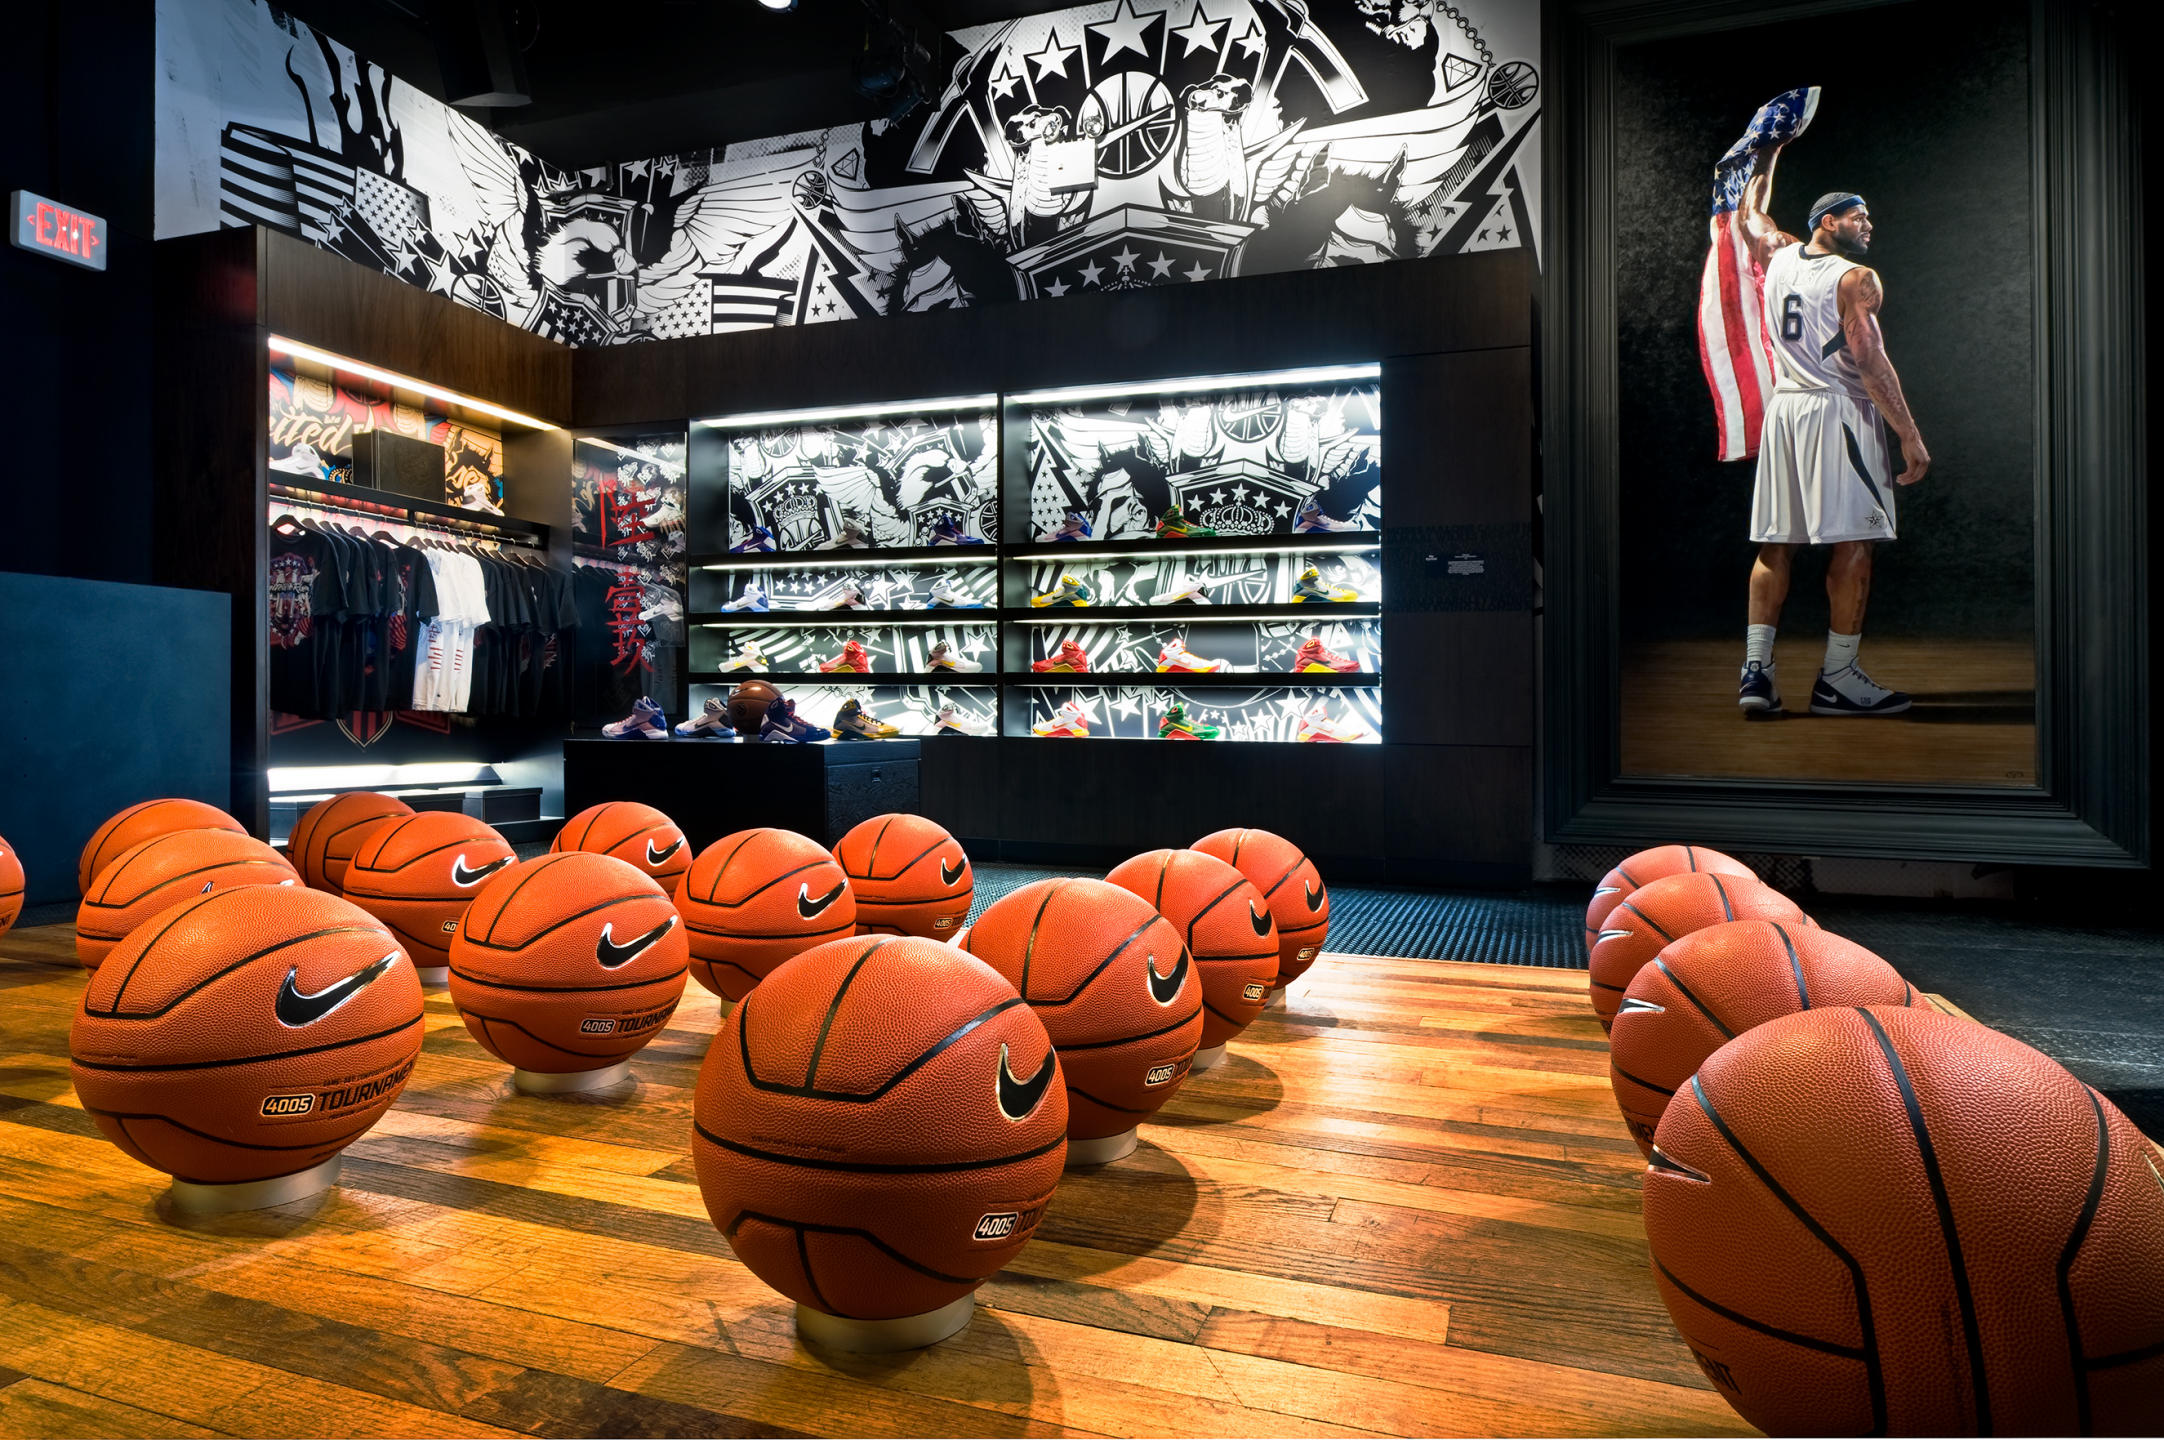 NIKE gallery in Harlem, NYC featuring NIKE products used by the professional basketball players : NIKE : New York NY Architectural Photographer | Interior and Exterior